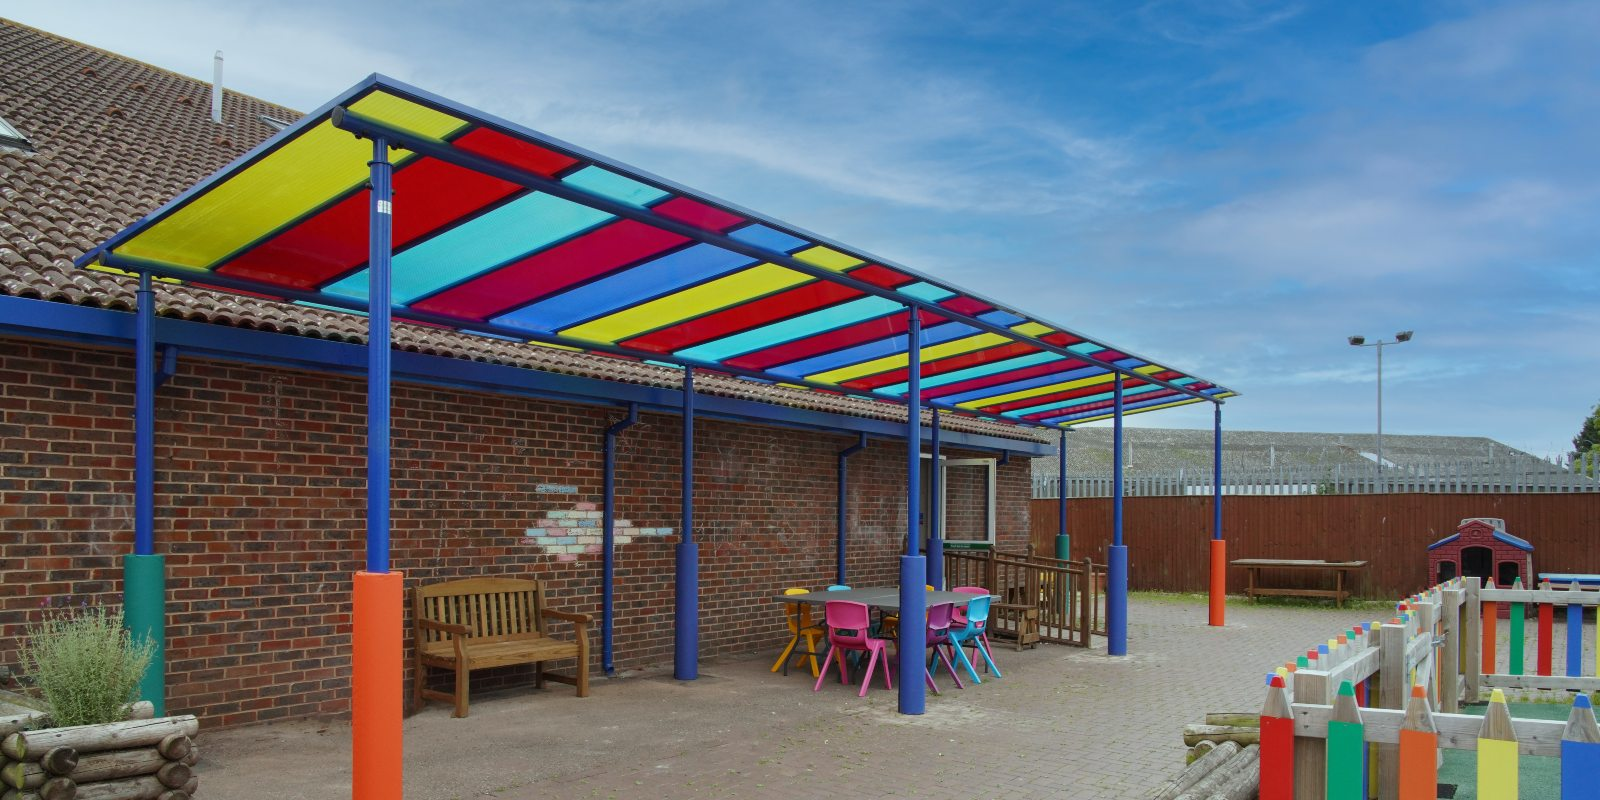 The Spring Trust Colourful Canopy